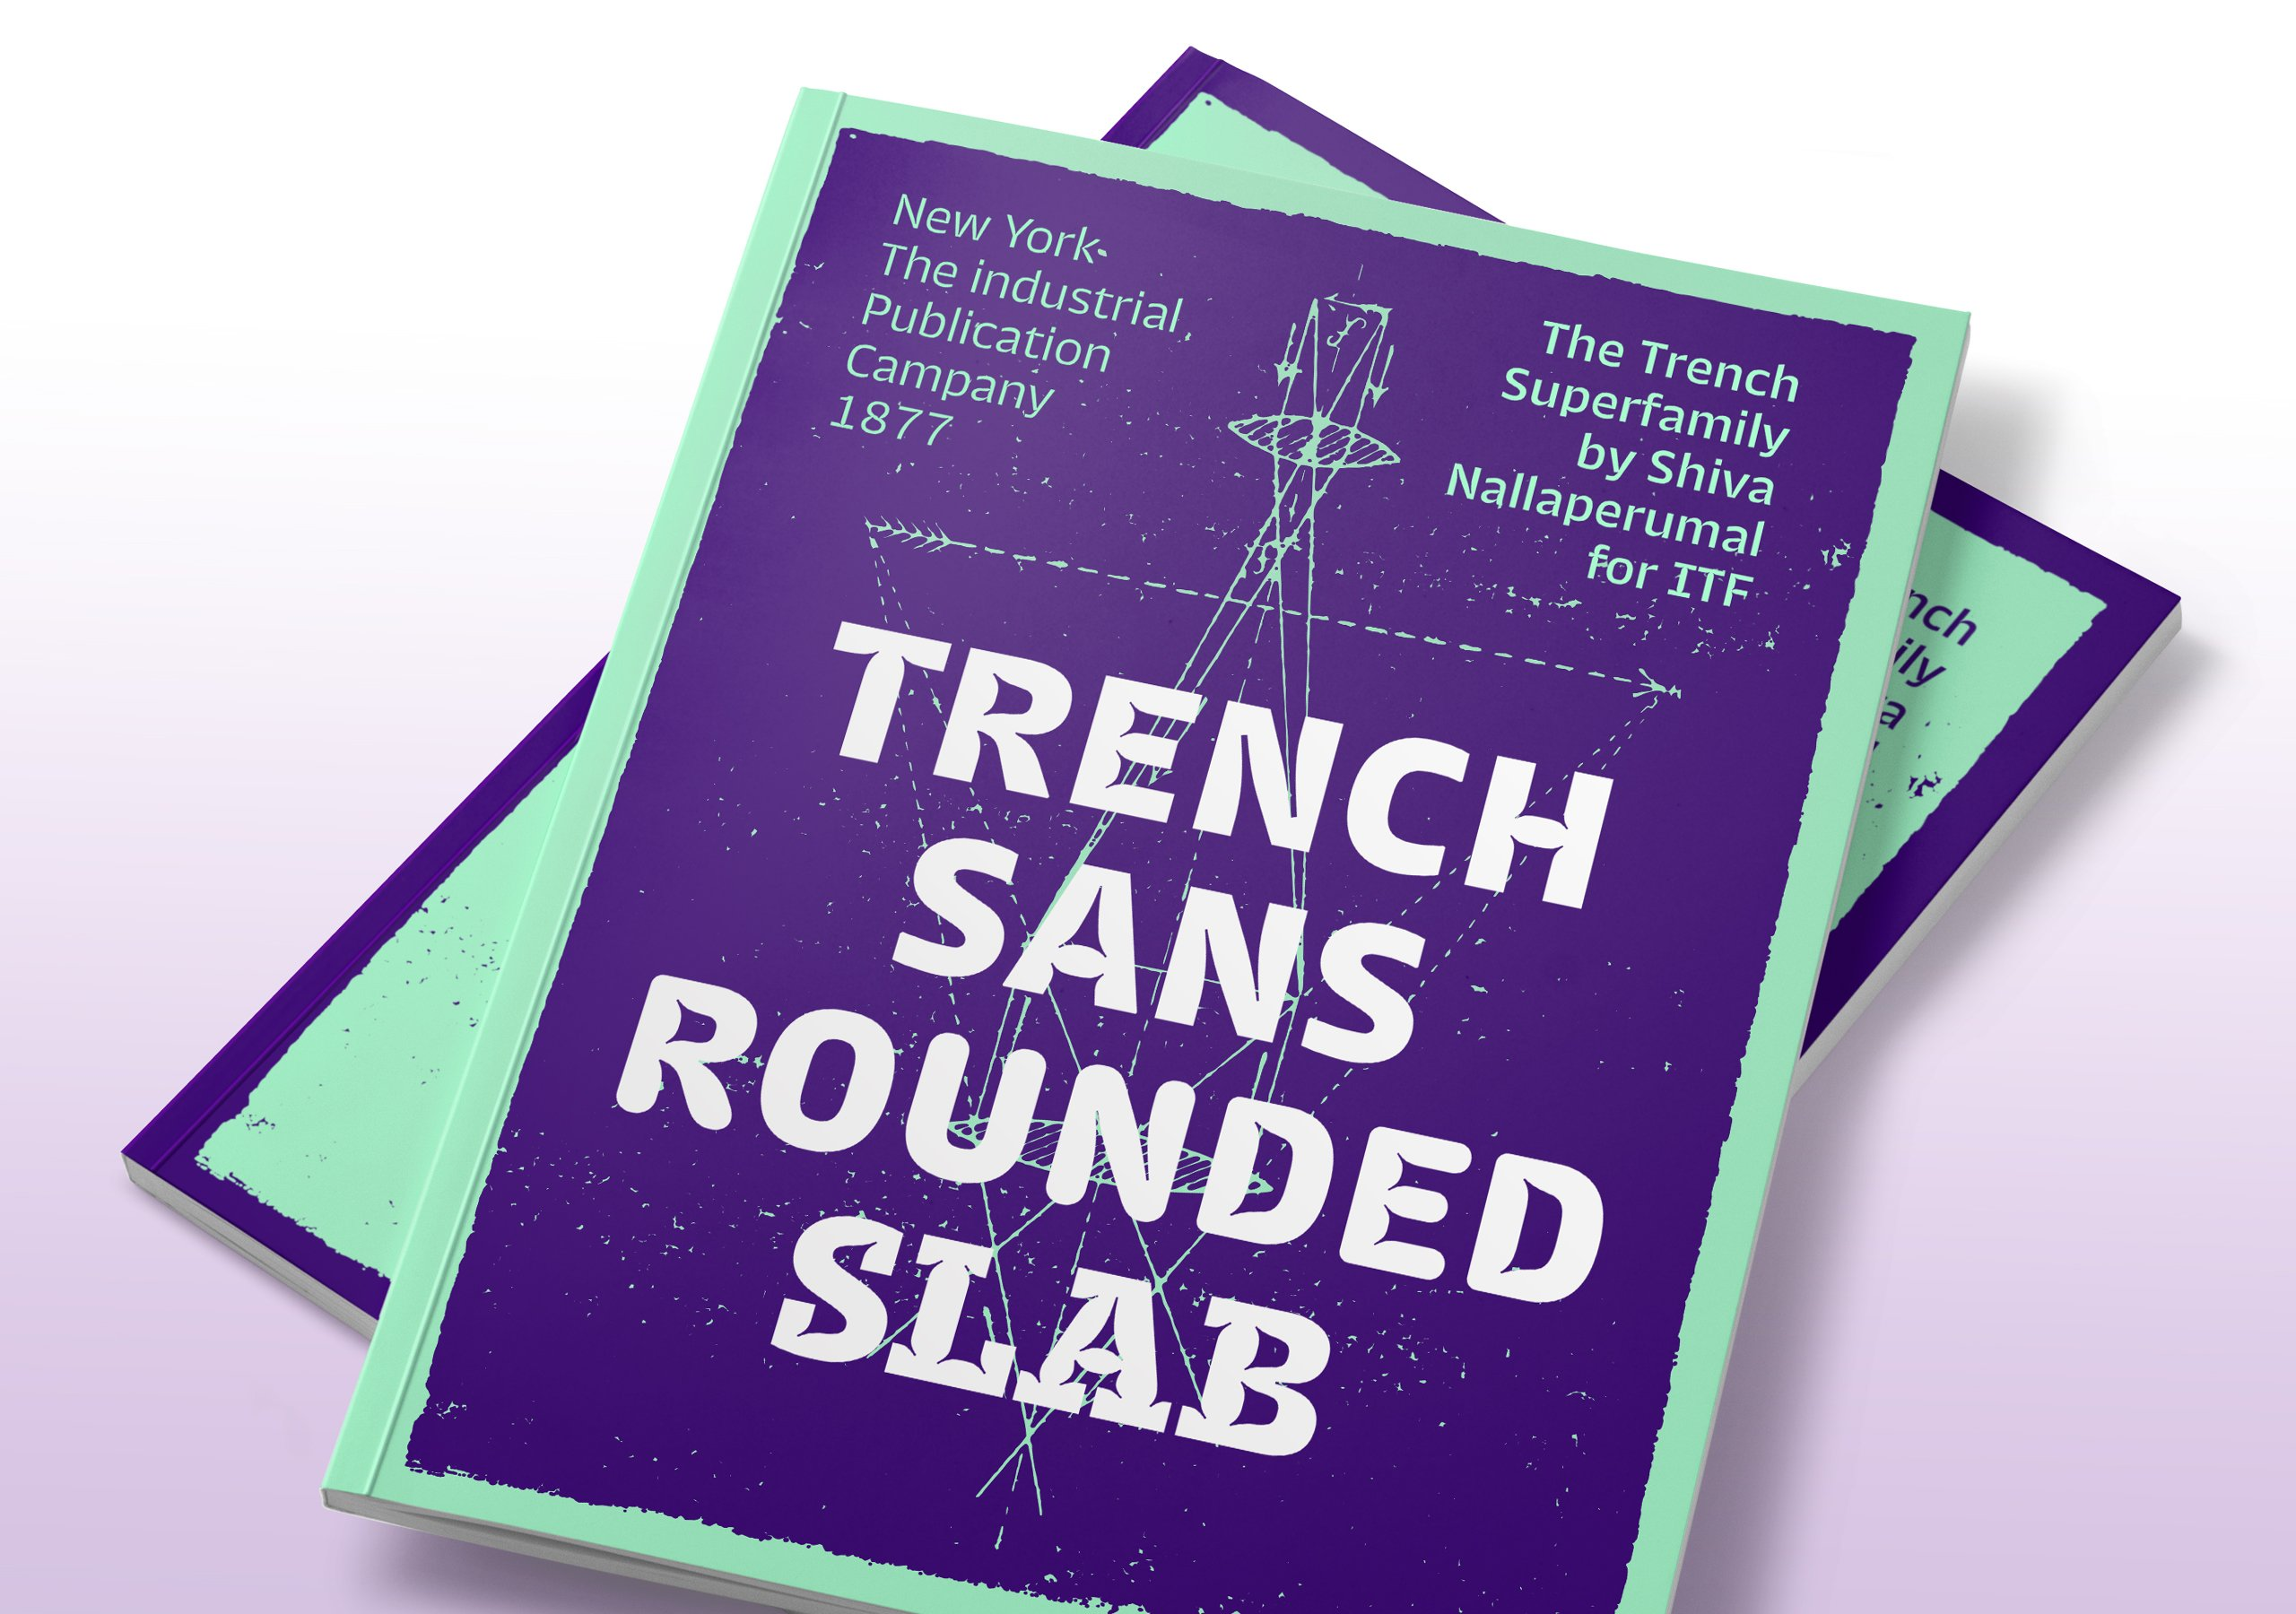 Fictitious use case for Trench Sans by Alexandra Schwarzwald